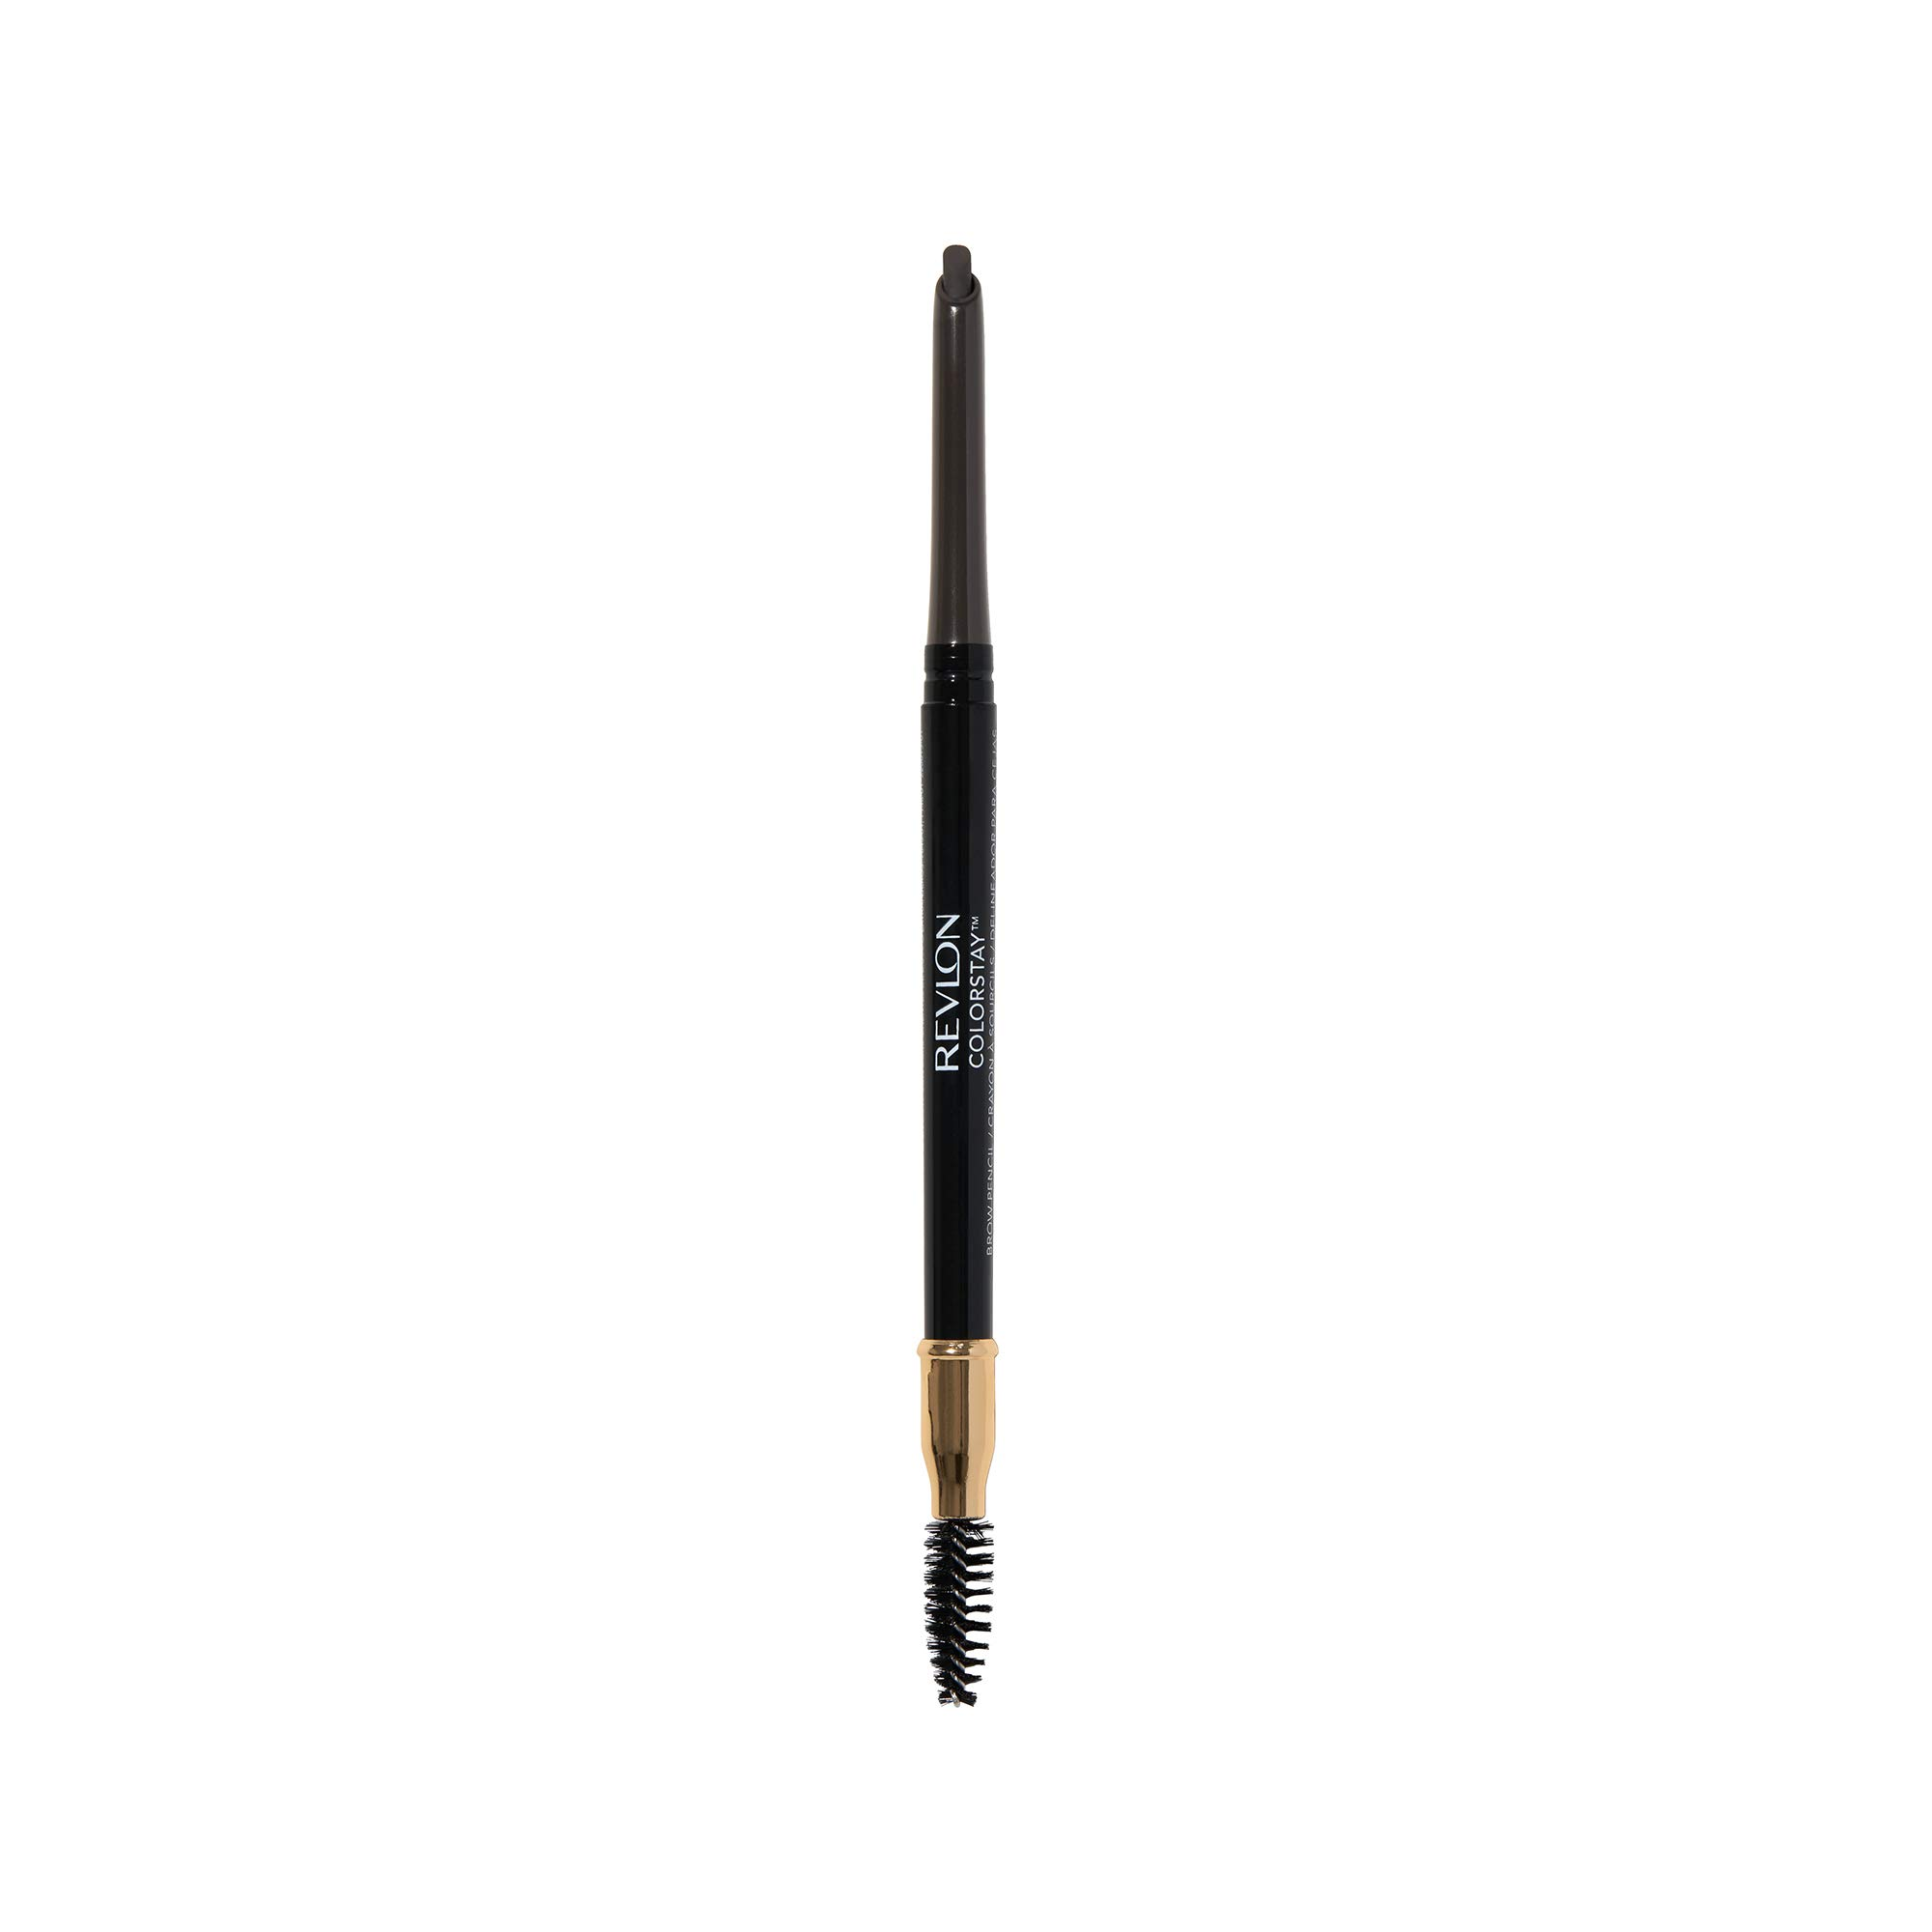 Revlon ColorStay Eyebrow Pencil with Spoolie Brush, Waterproof, Longwearing, Angled Tip Applicator, 225 Soft Black, 0.012 oz